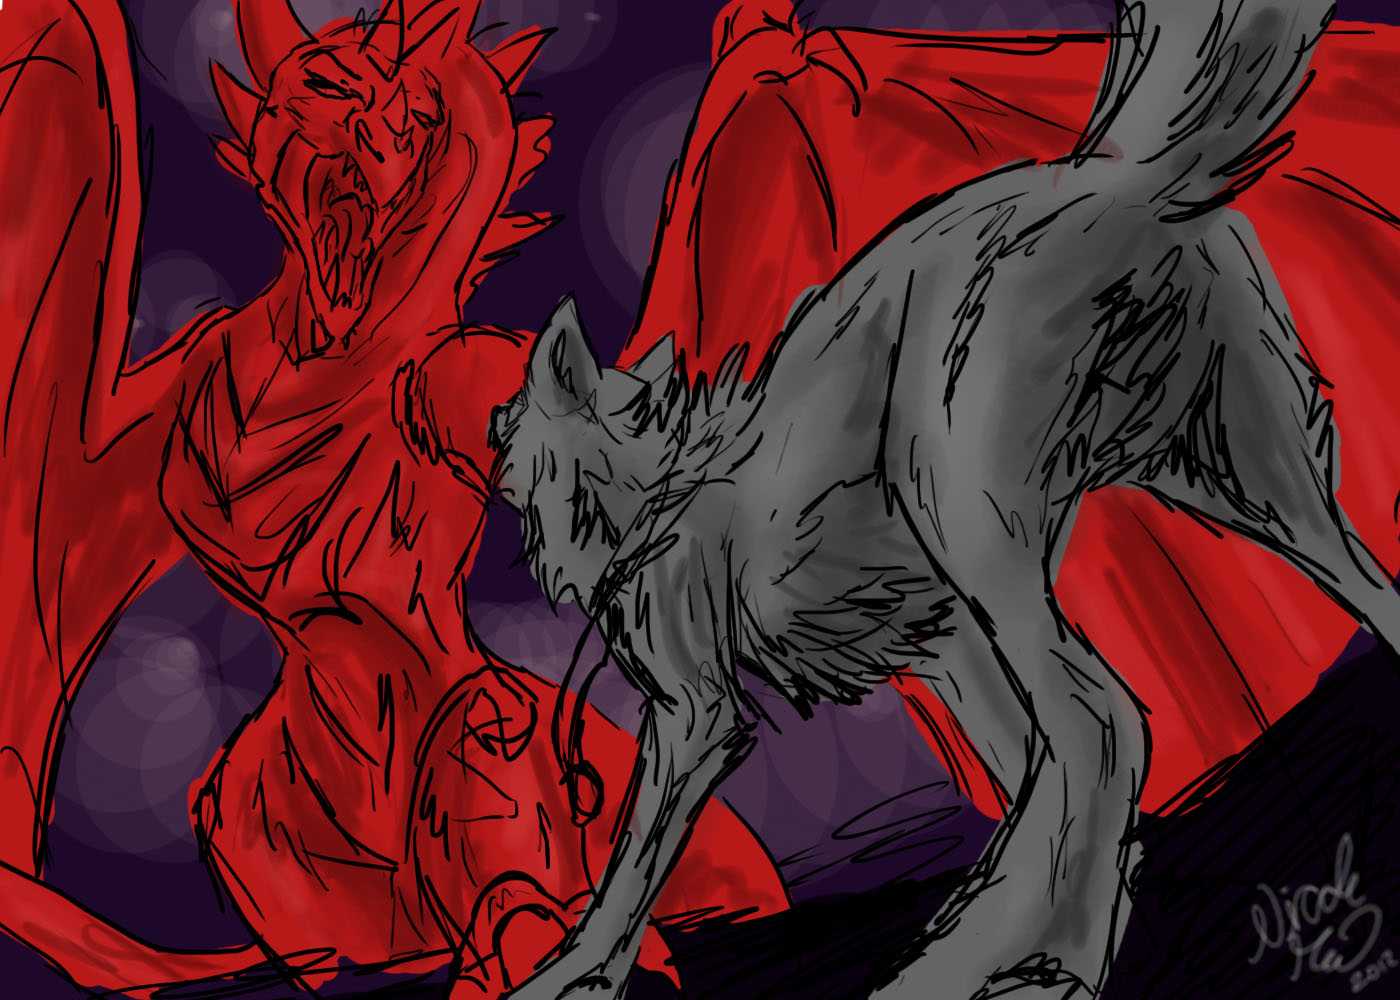 Wolf vs Dragon Sketch